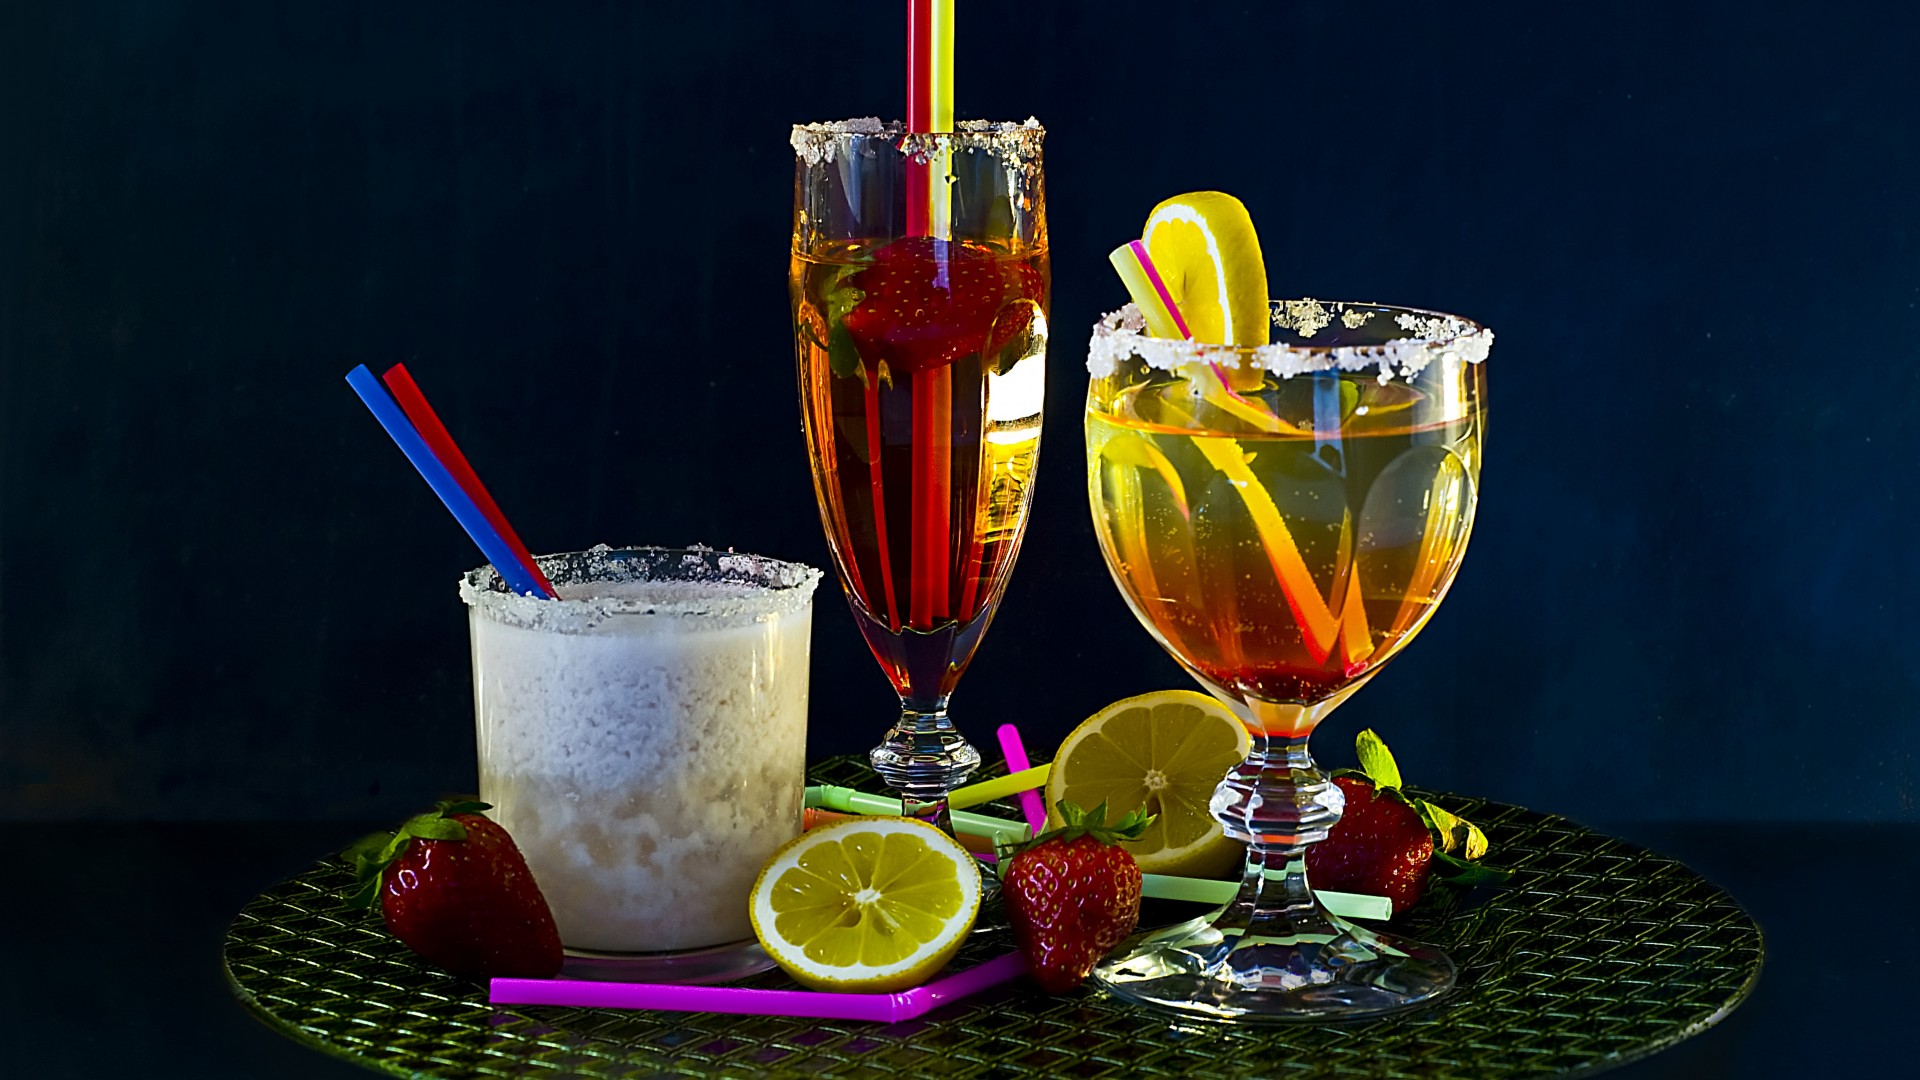 cocktails, Milk shake, strawberry, orange, ice, sugar, lemon,  (horizontal)